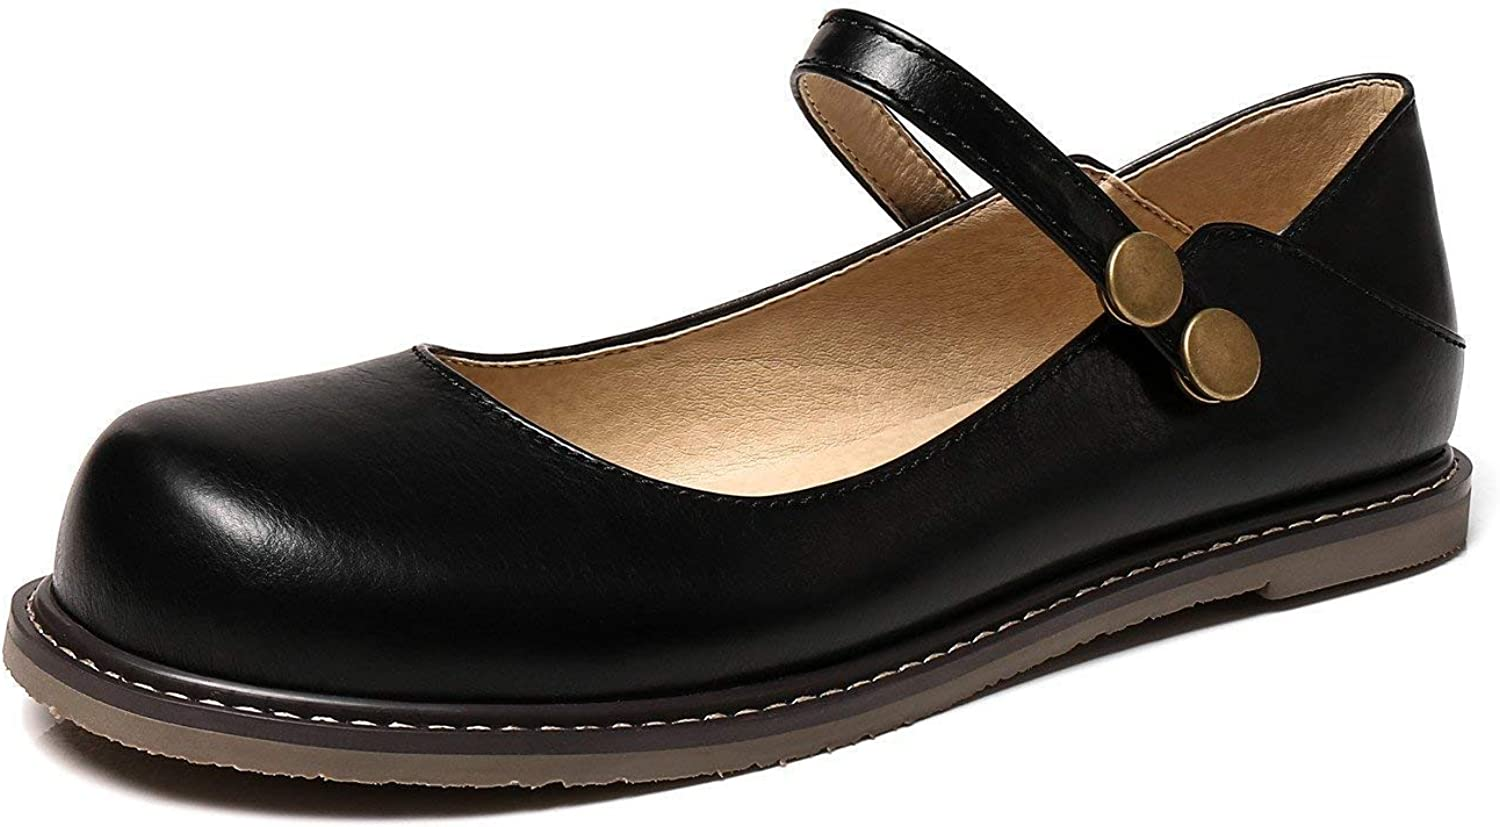 LADIES NEW COMFORT FLAT CASUAL WALKING OFFICE MARY JANE PUMPS LOAFERS SHOES SIZE